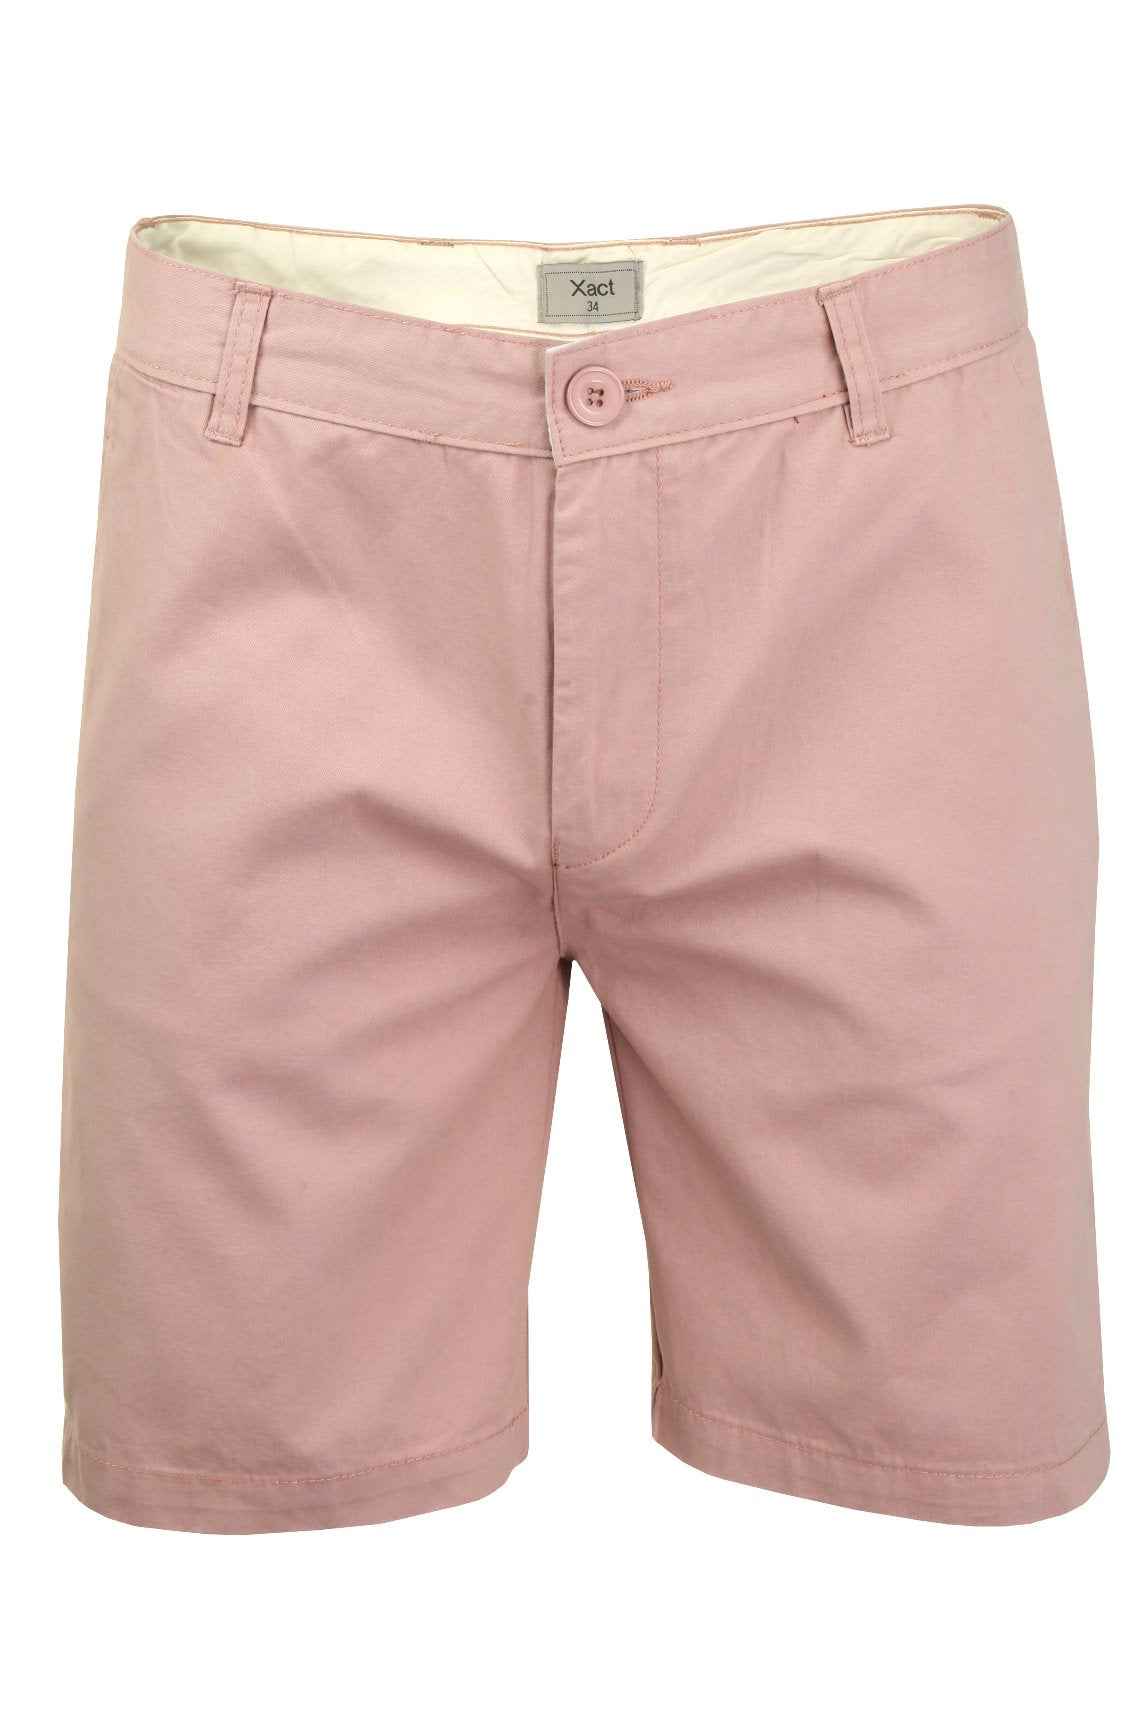 Xact Chino Shorts Mens Soft Feel Cotton Fashion Garment-Main Image